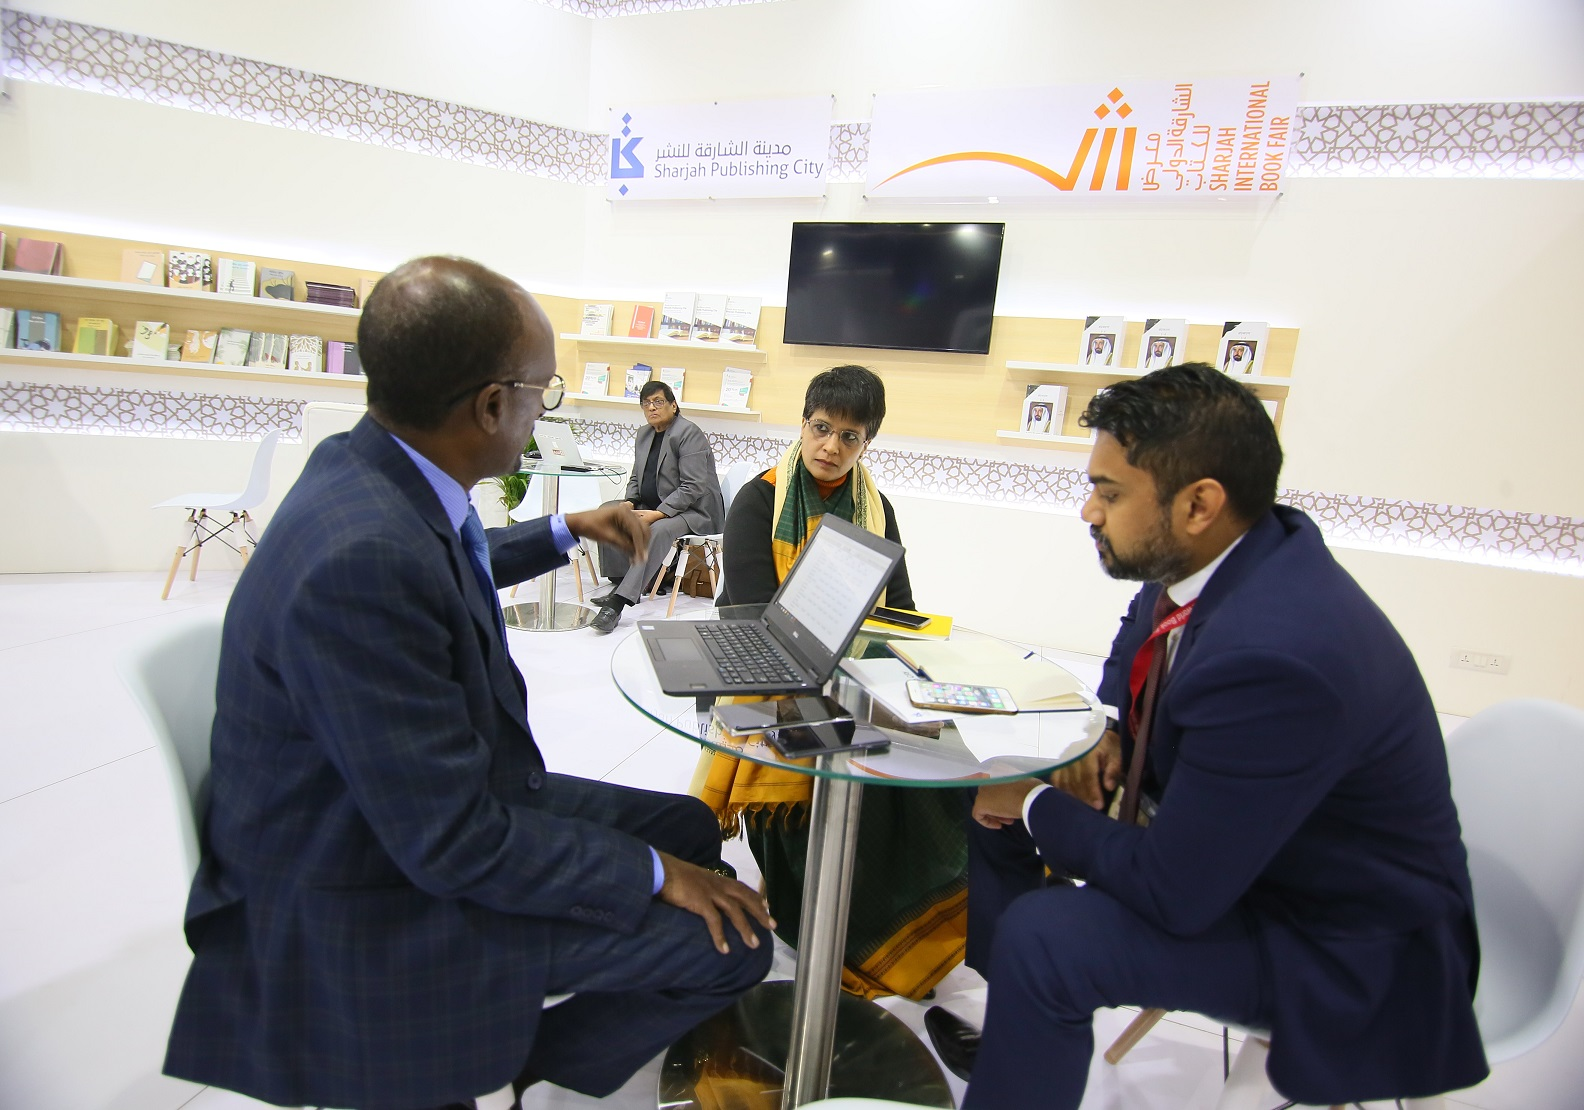 sharjah publishing city highlights strong investment opportunities to indian publishers 1.jpg